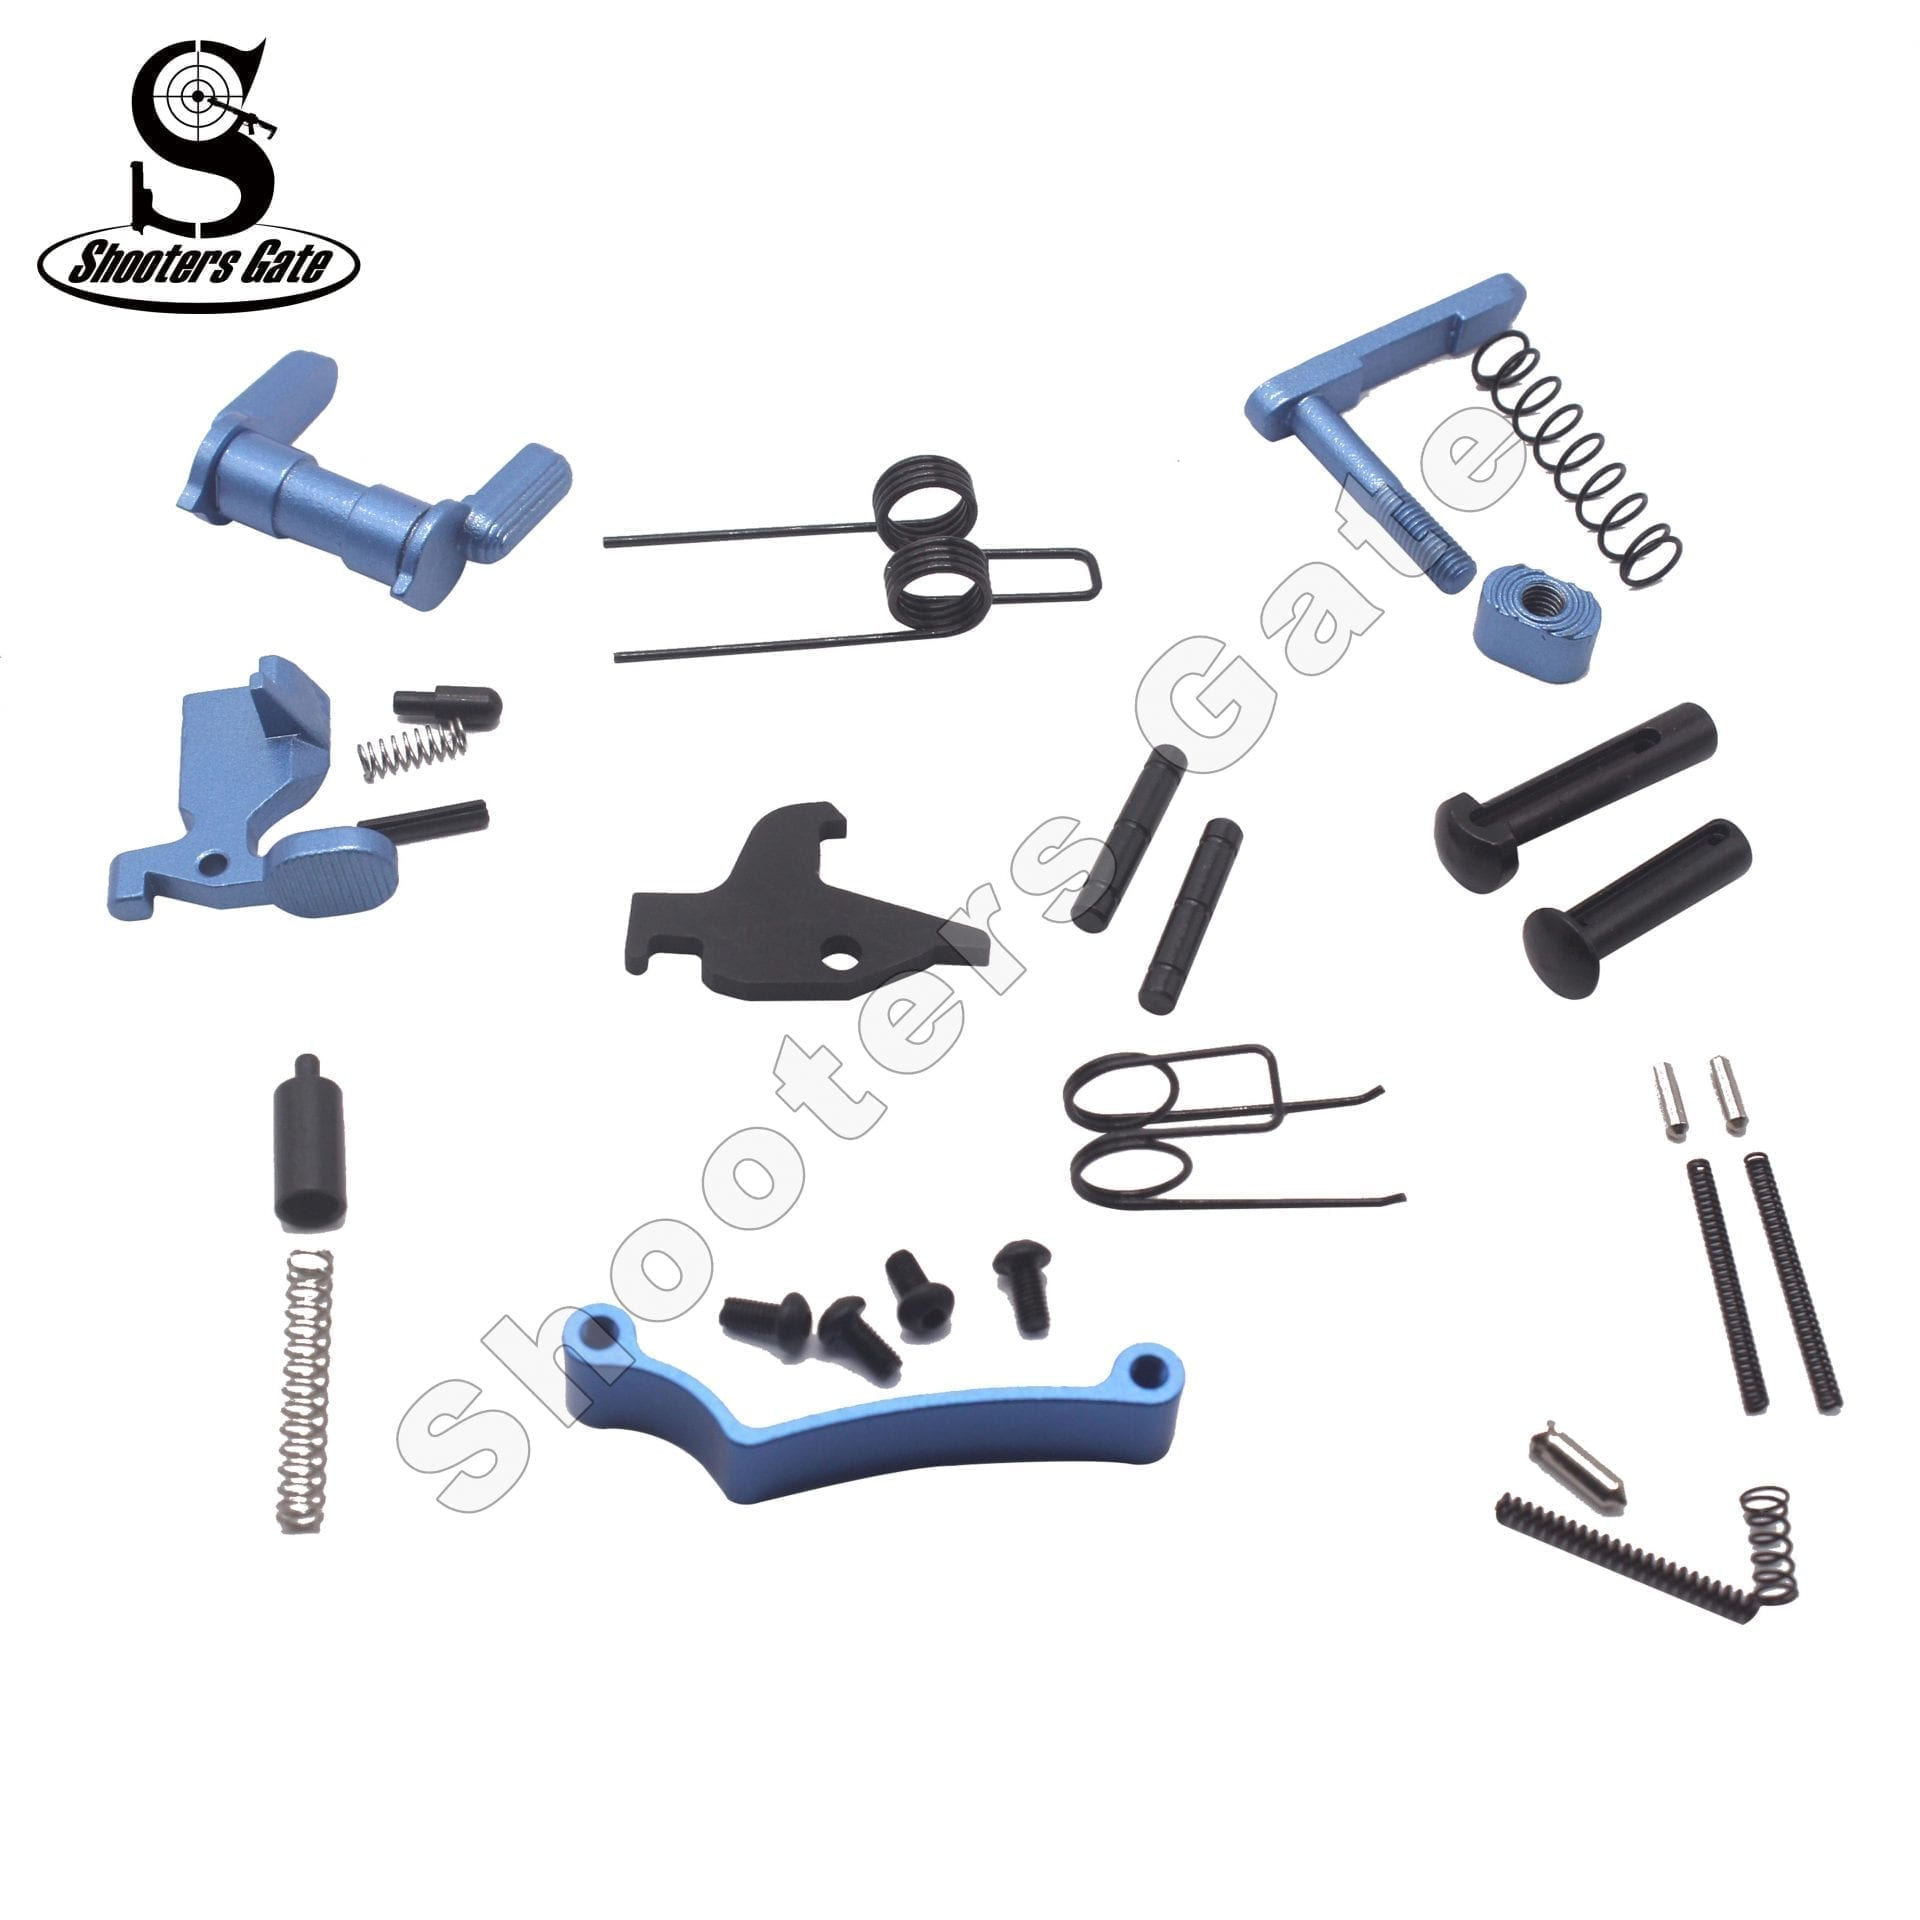 AR 15 33PCS LOWER PARTS KIT EXCEPT TRIGGER, HAMMER AND GRIP - BLUE